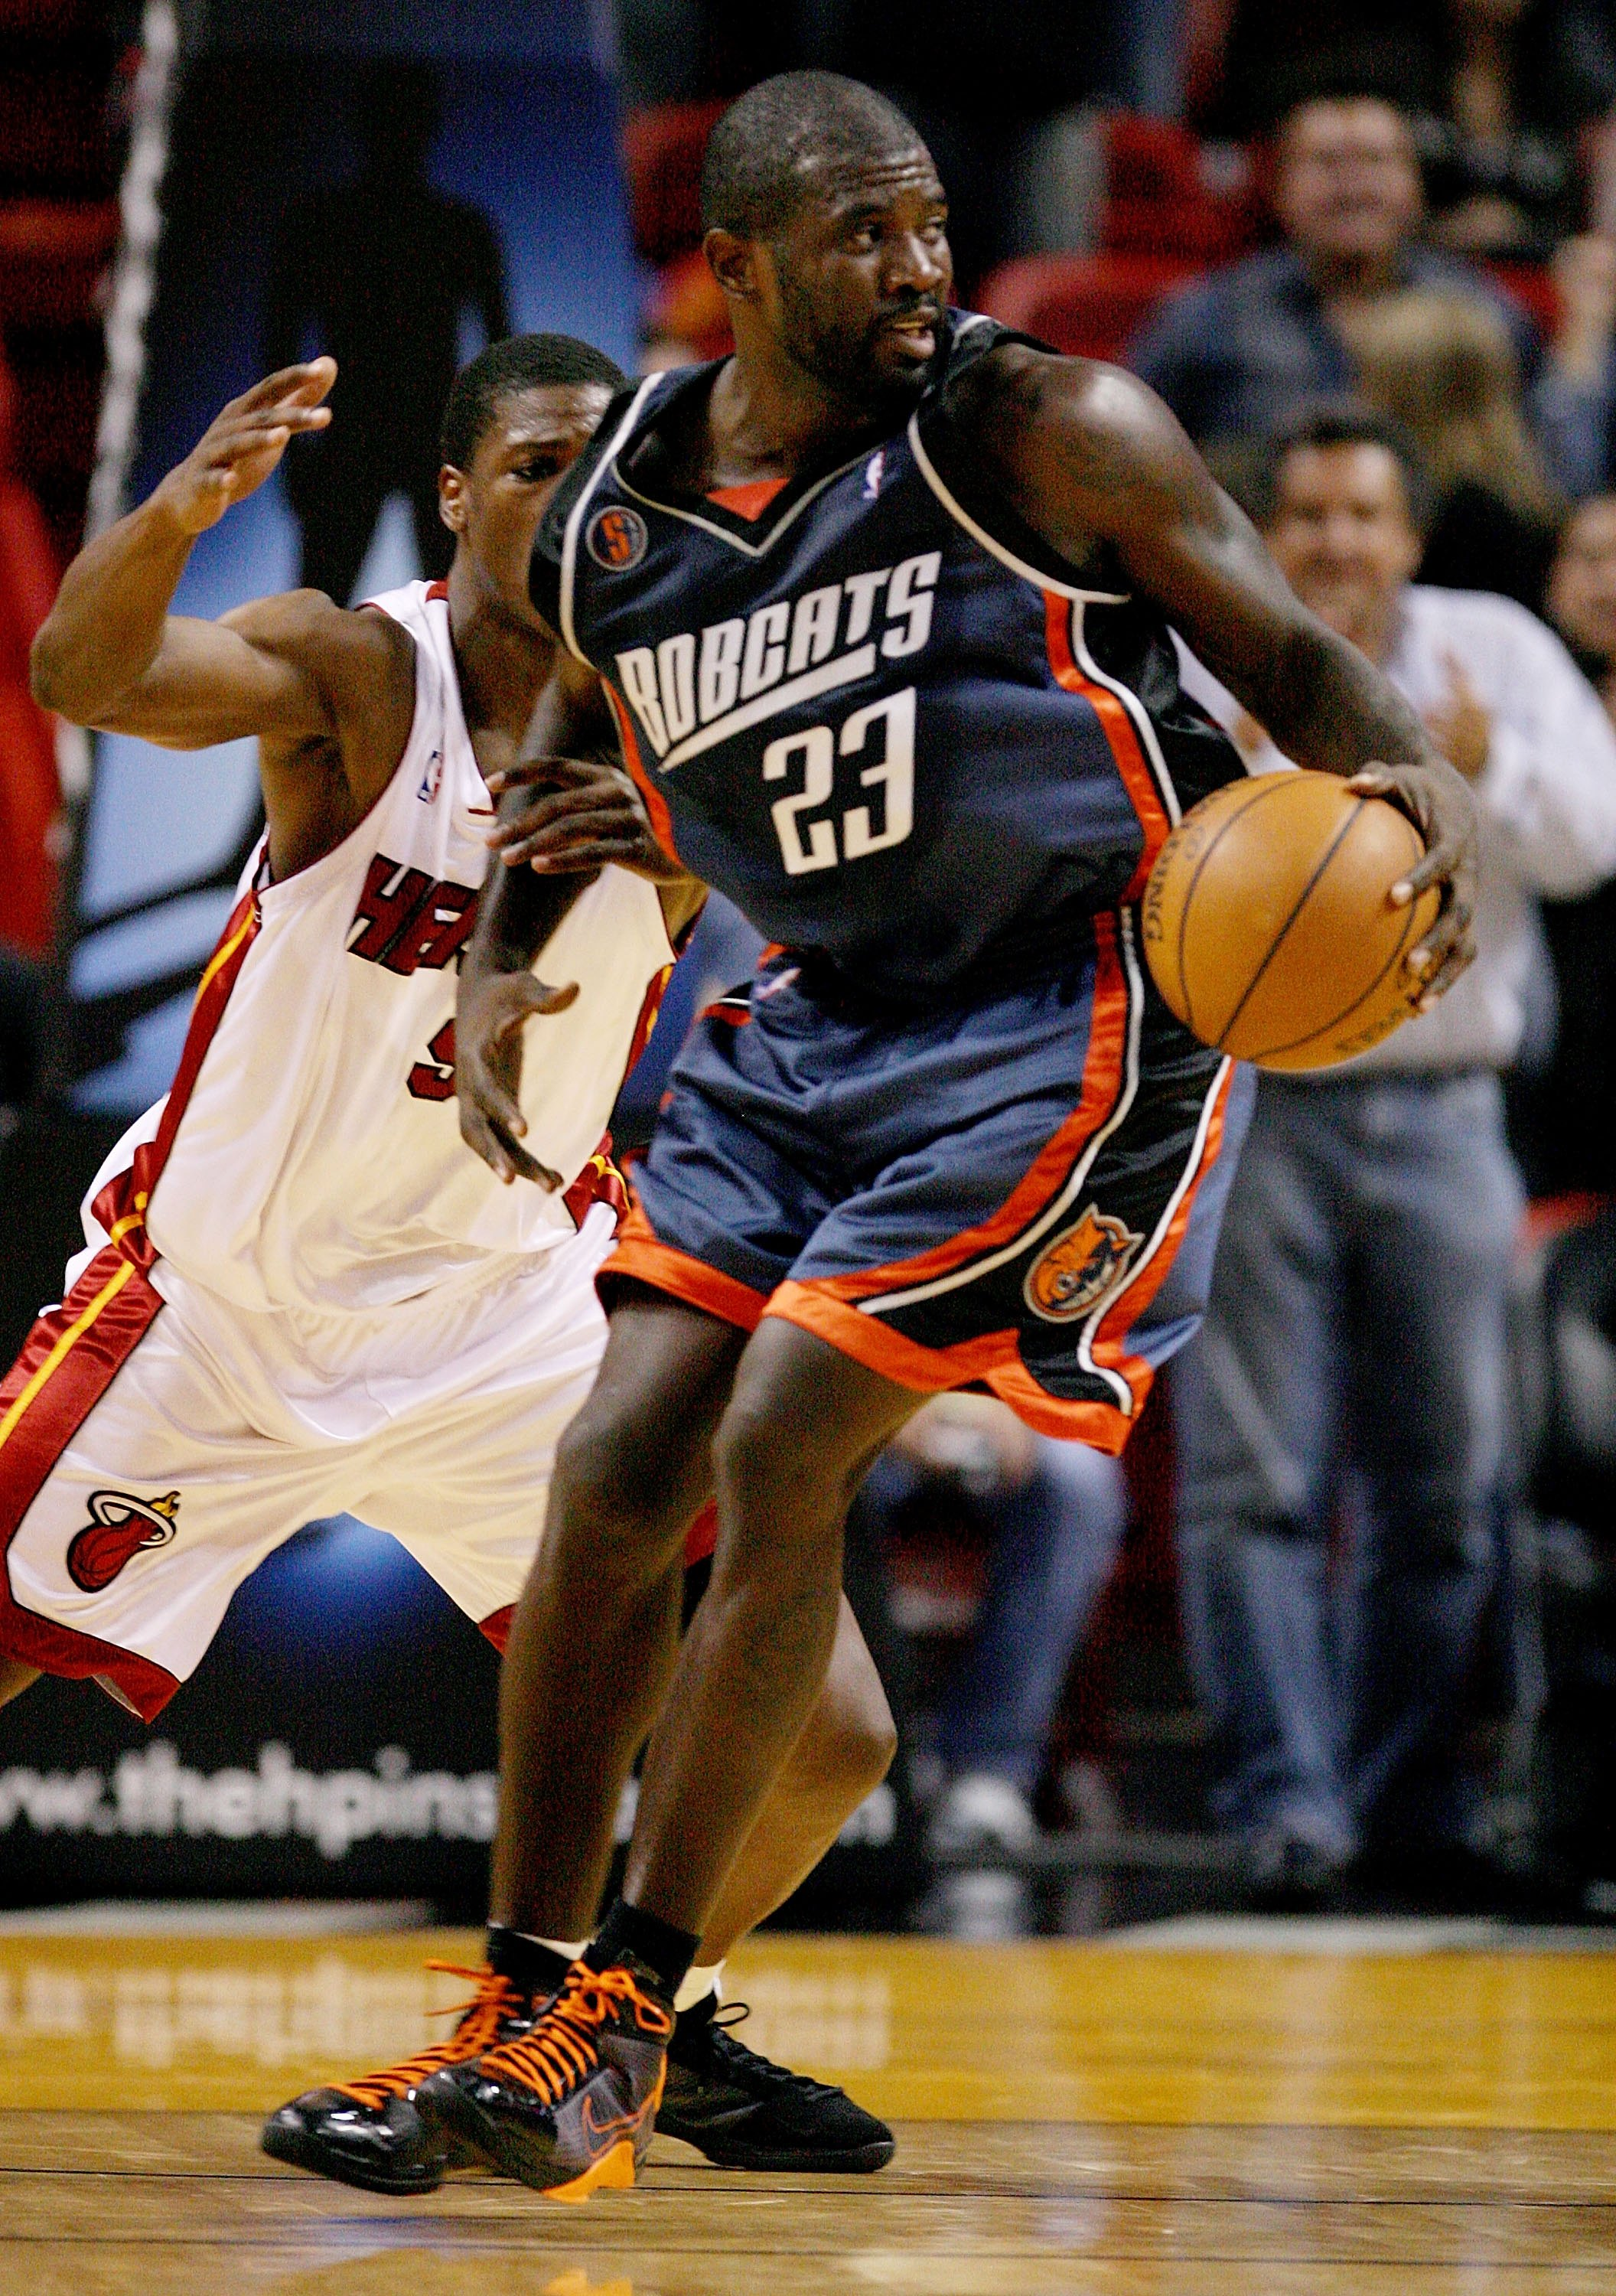 MIAMI - DECEMBER 08:  Jason Richardson #23 of the Charlotte Bobcats spins against Yakhouba Diawara #9 of the Miami Heat at American Airlines Arena on December 8, 2008 in Miami, Florida. The Heat defeated the Bobcats 100-96. NOTE TO USER: User expressly ac